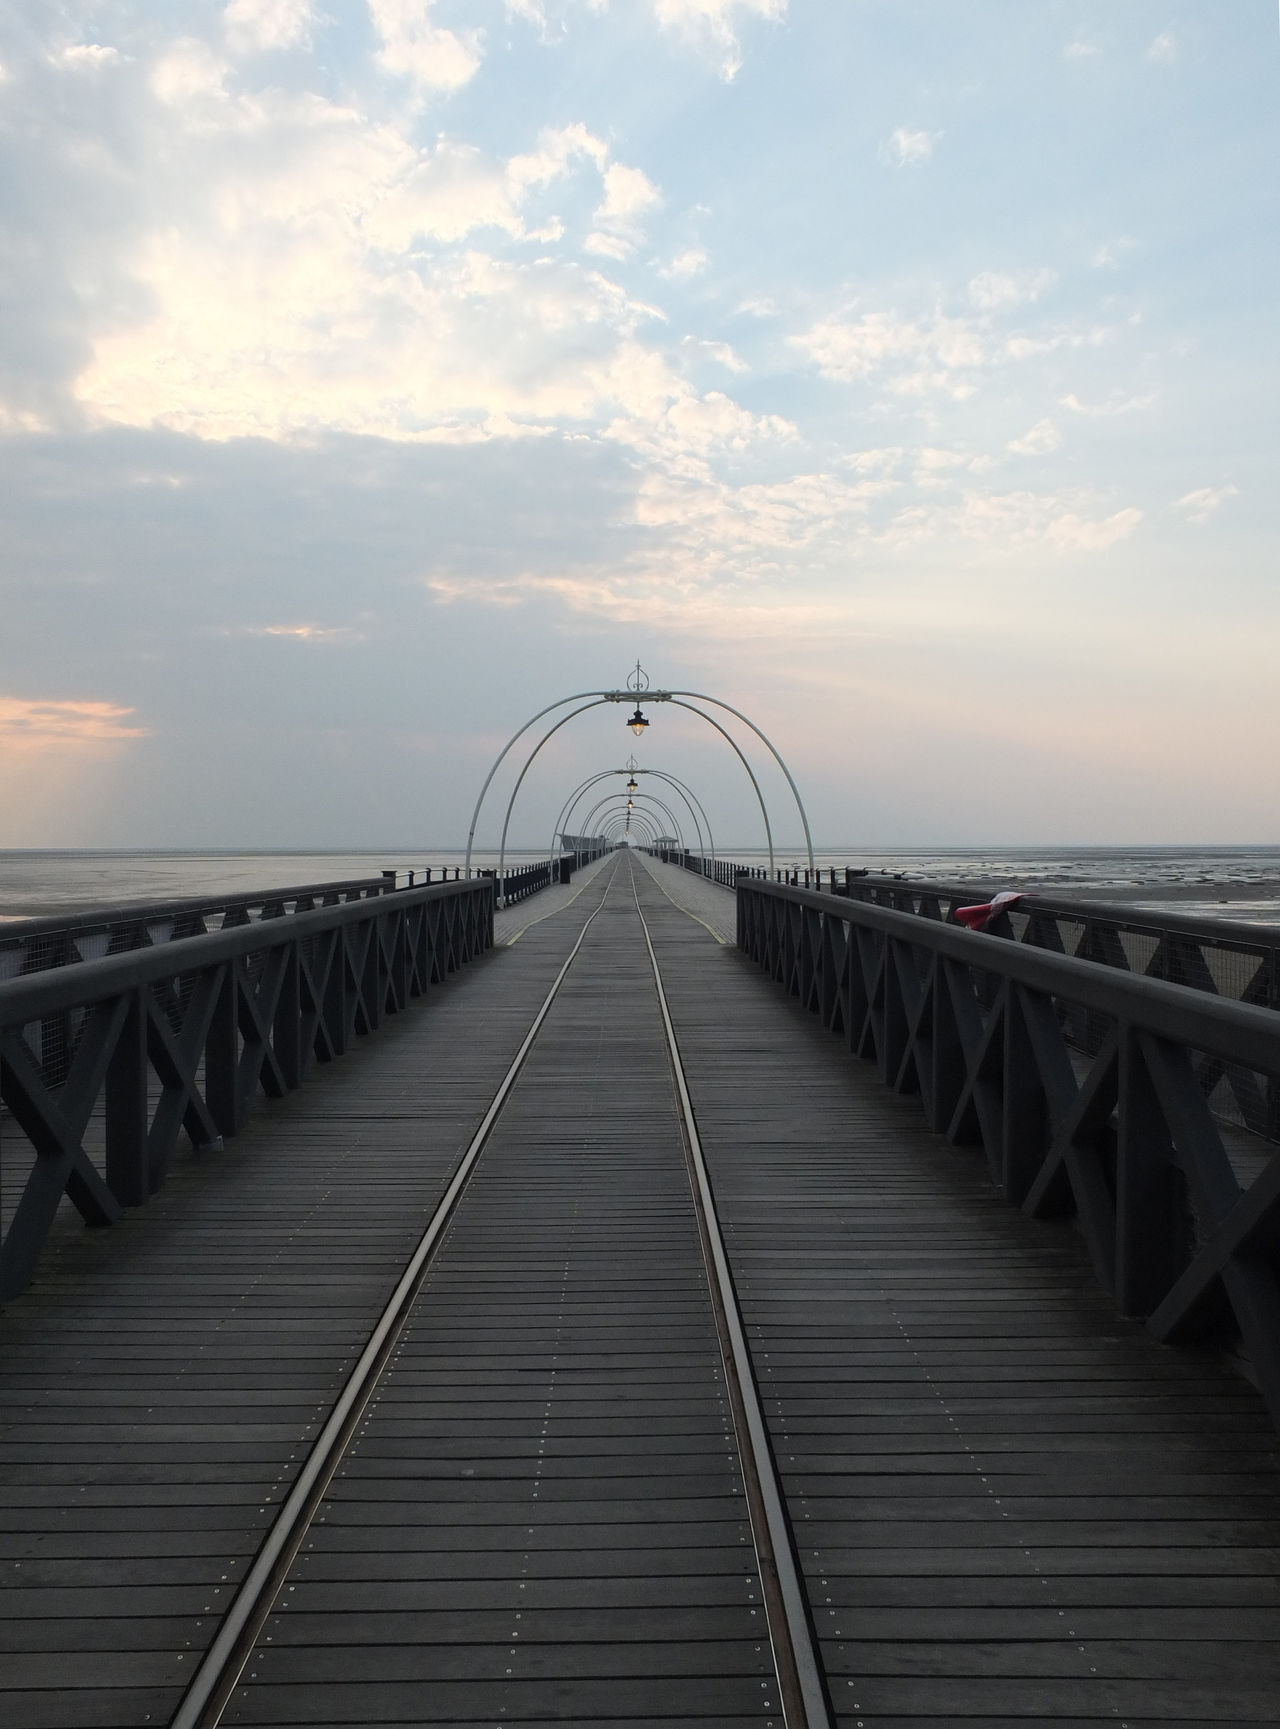 southport pier in lancashire Architecture Beauty In Nature Bridge - Man Made Structure Built Structure Cloud - Sky Connection Day Diminishing Perspective Horizon Over Water Industry Nature No People Outdoors Pink Color Railing Scenics Sea Sky Southport Southport Pier Sunset The Way Forward Water